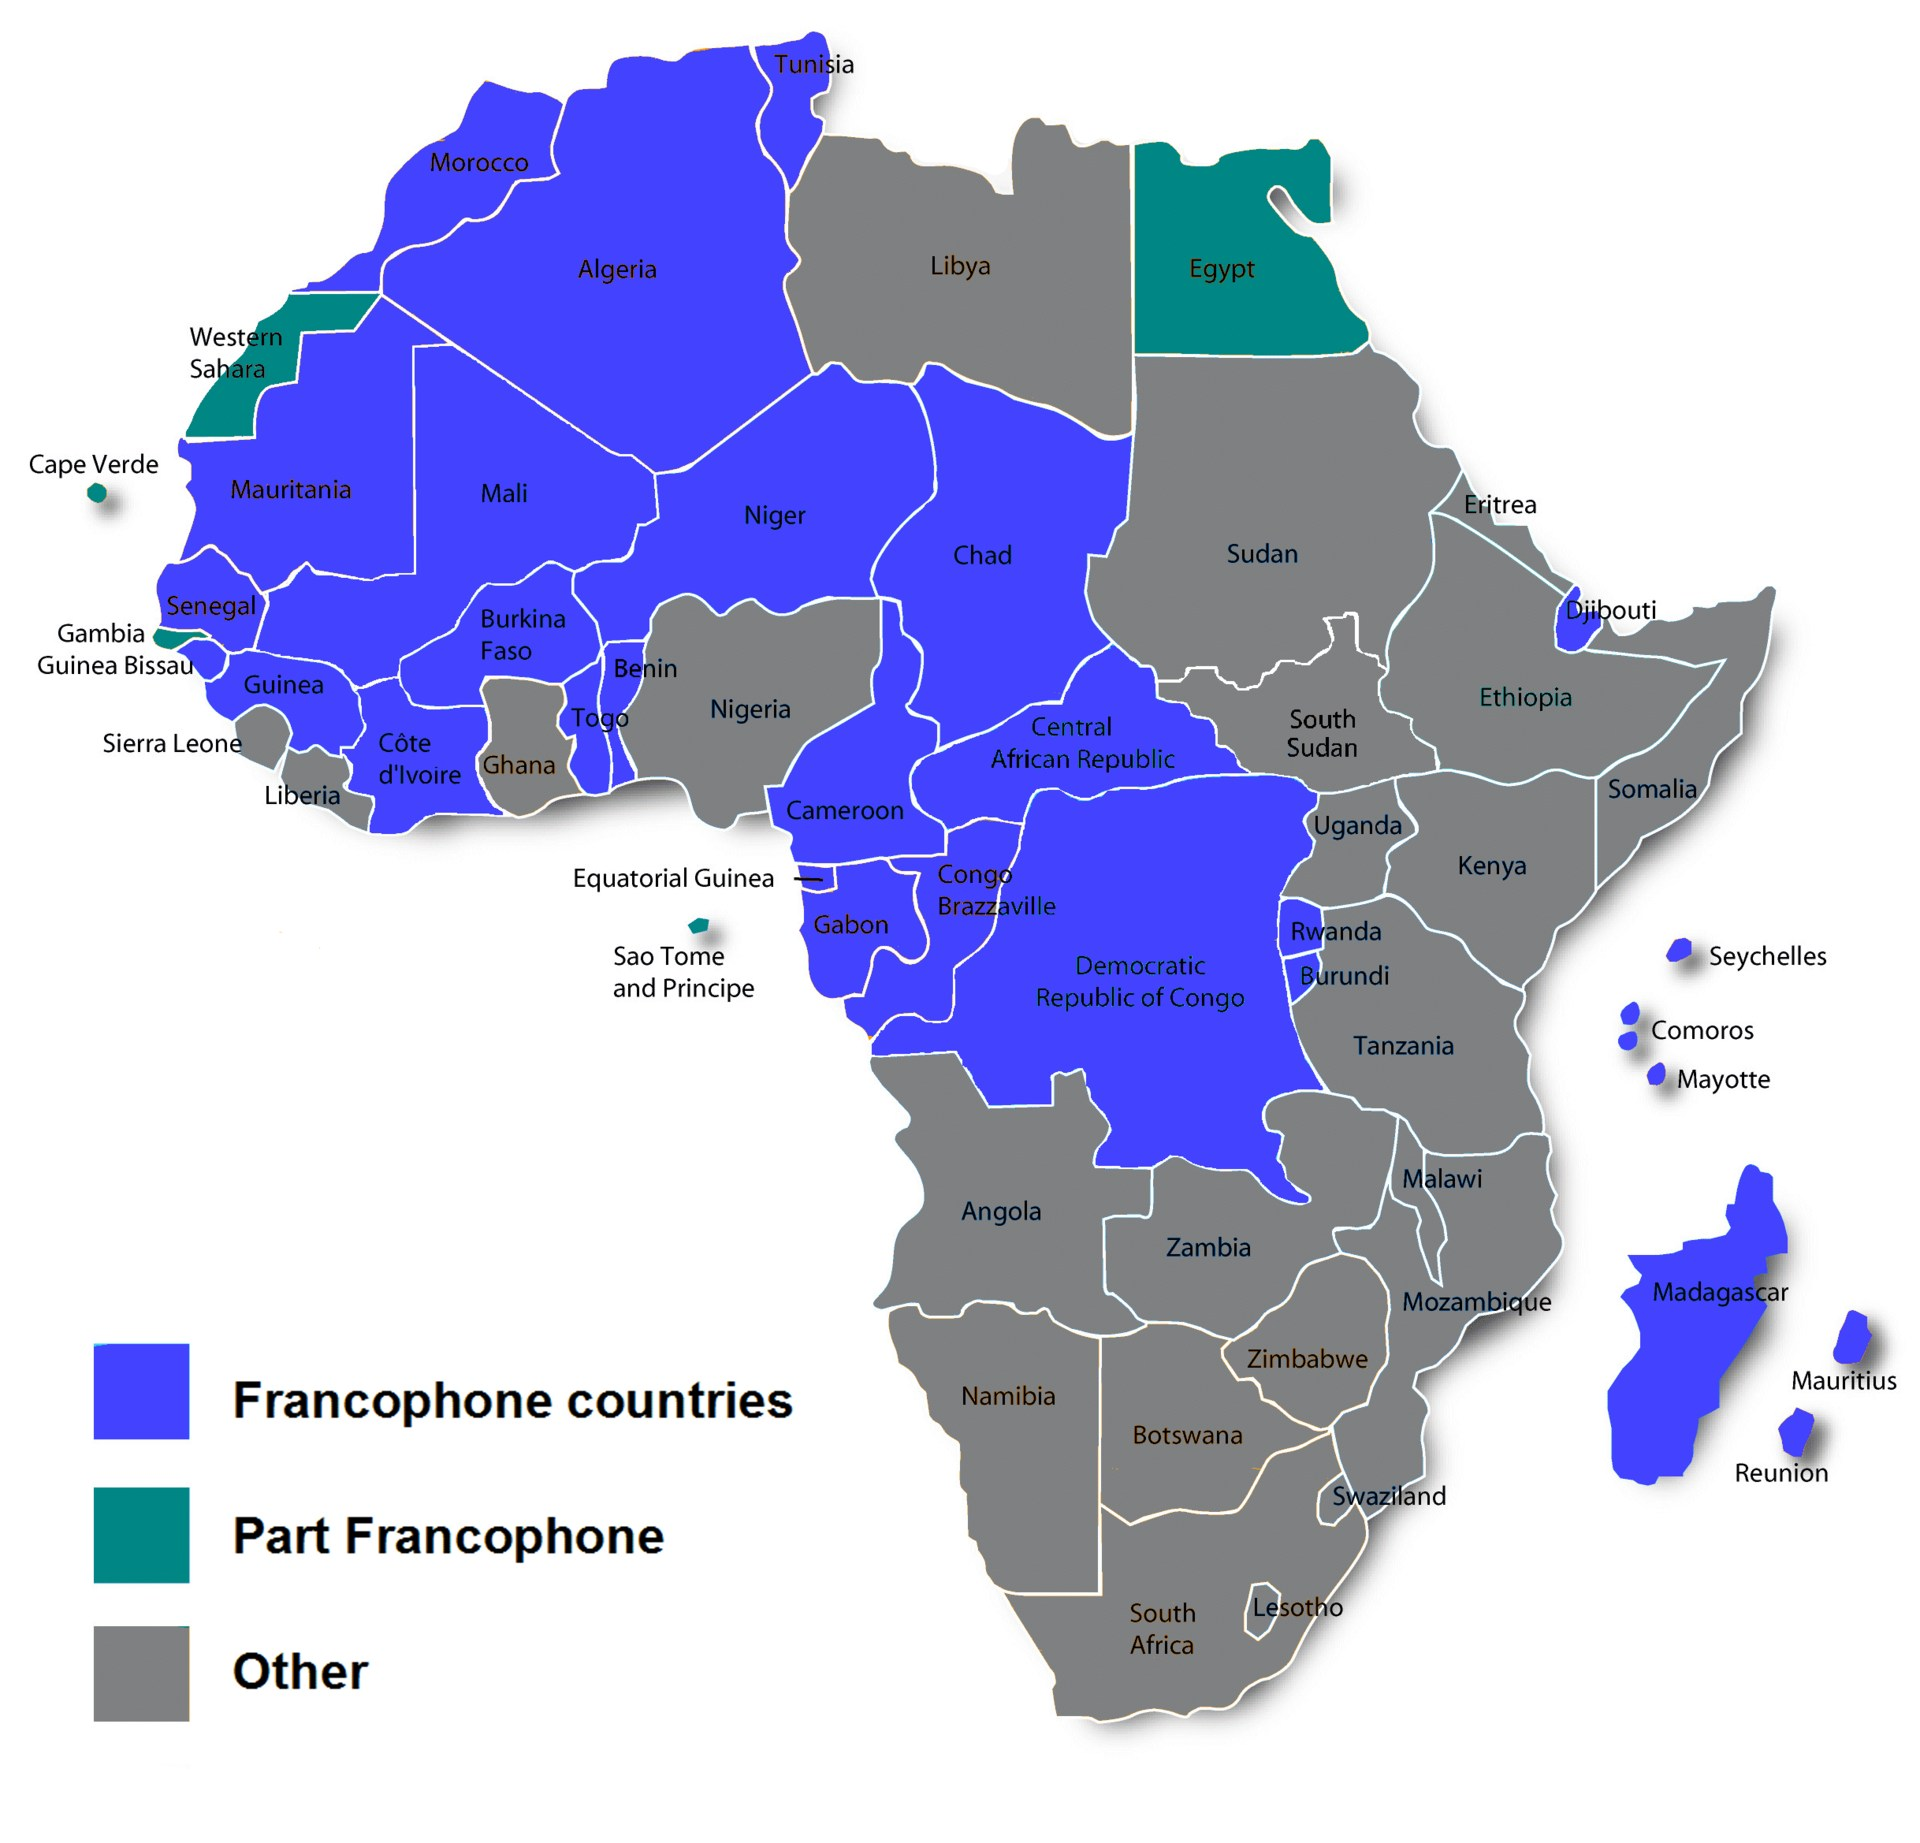 Francophone African countries